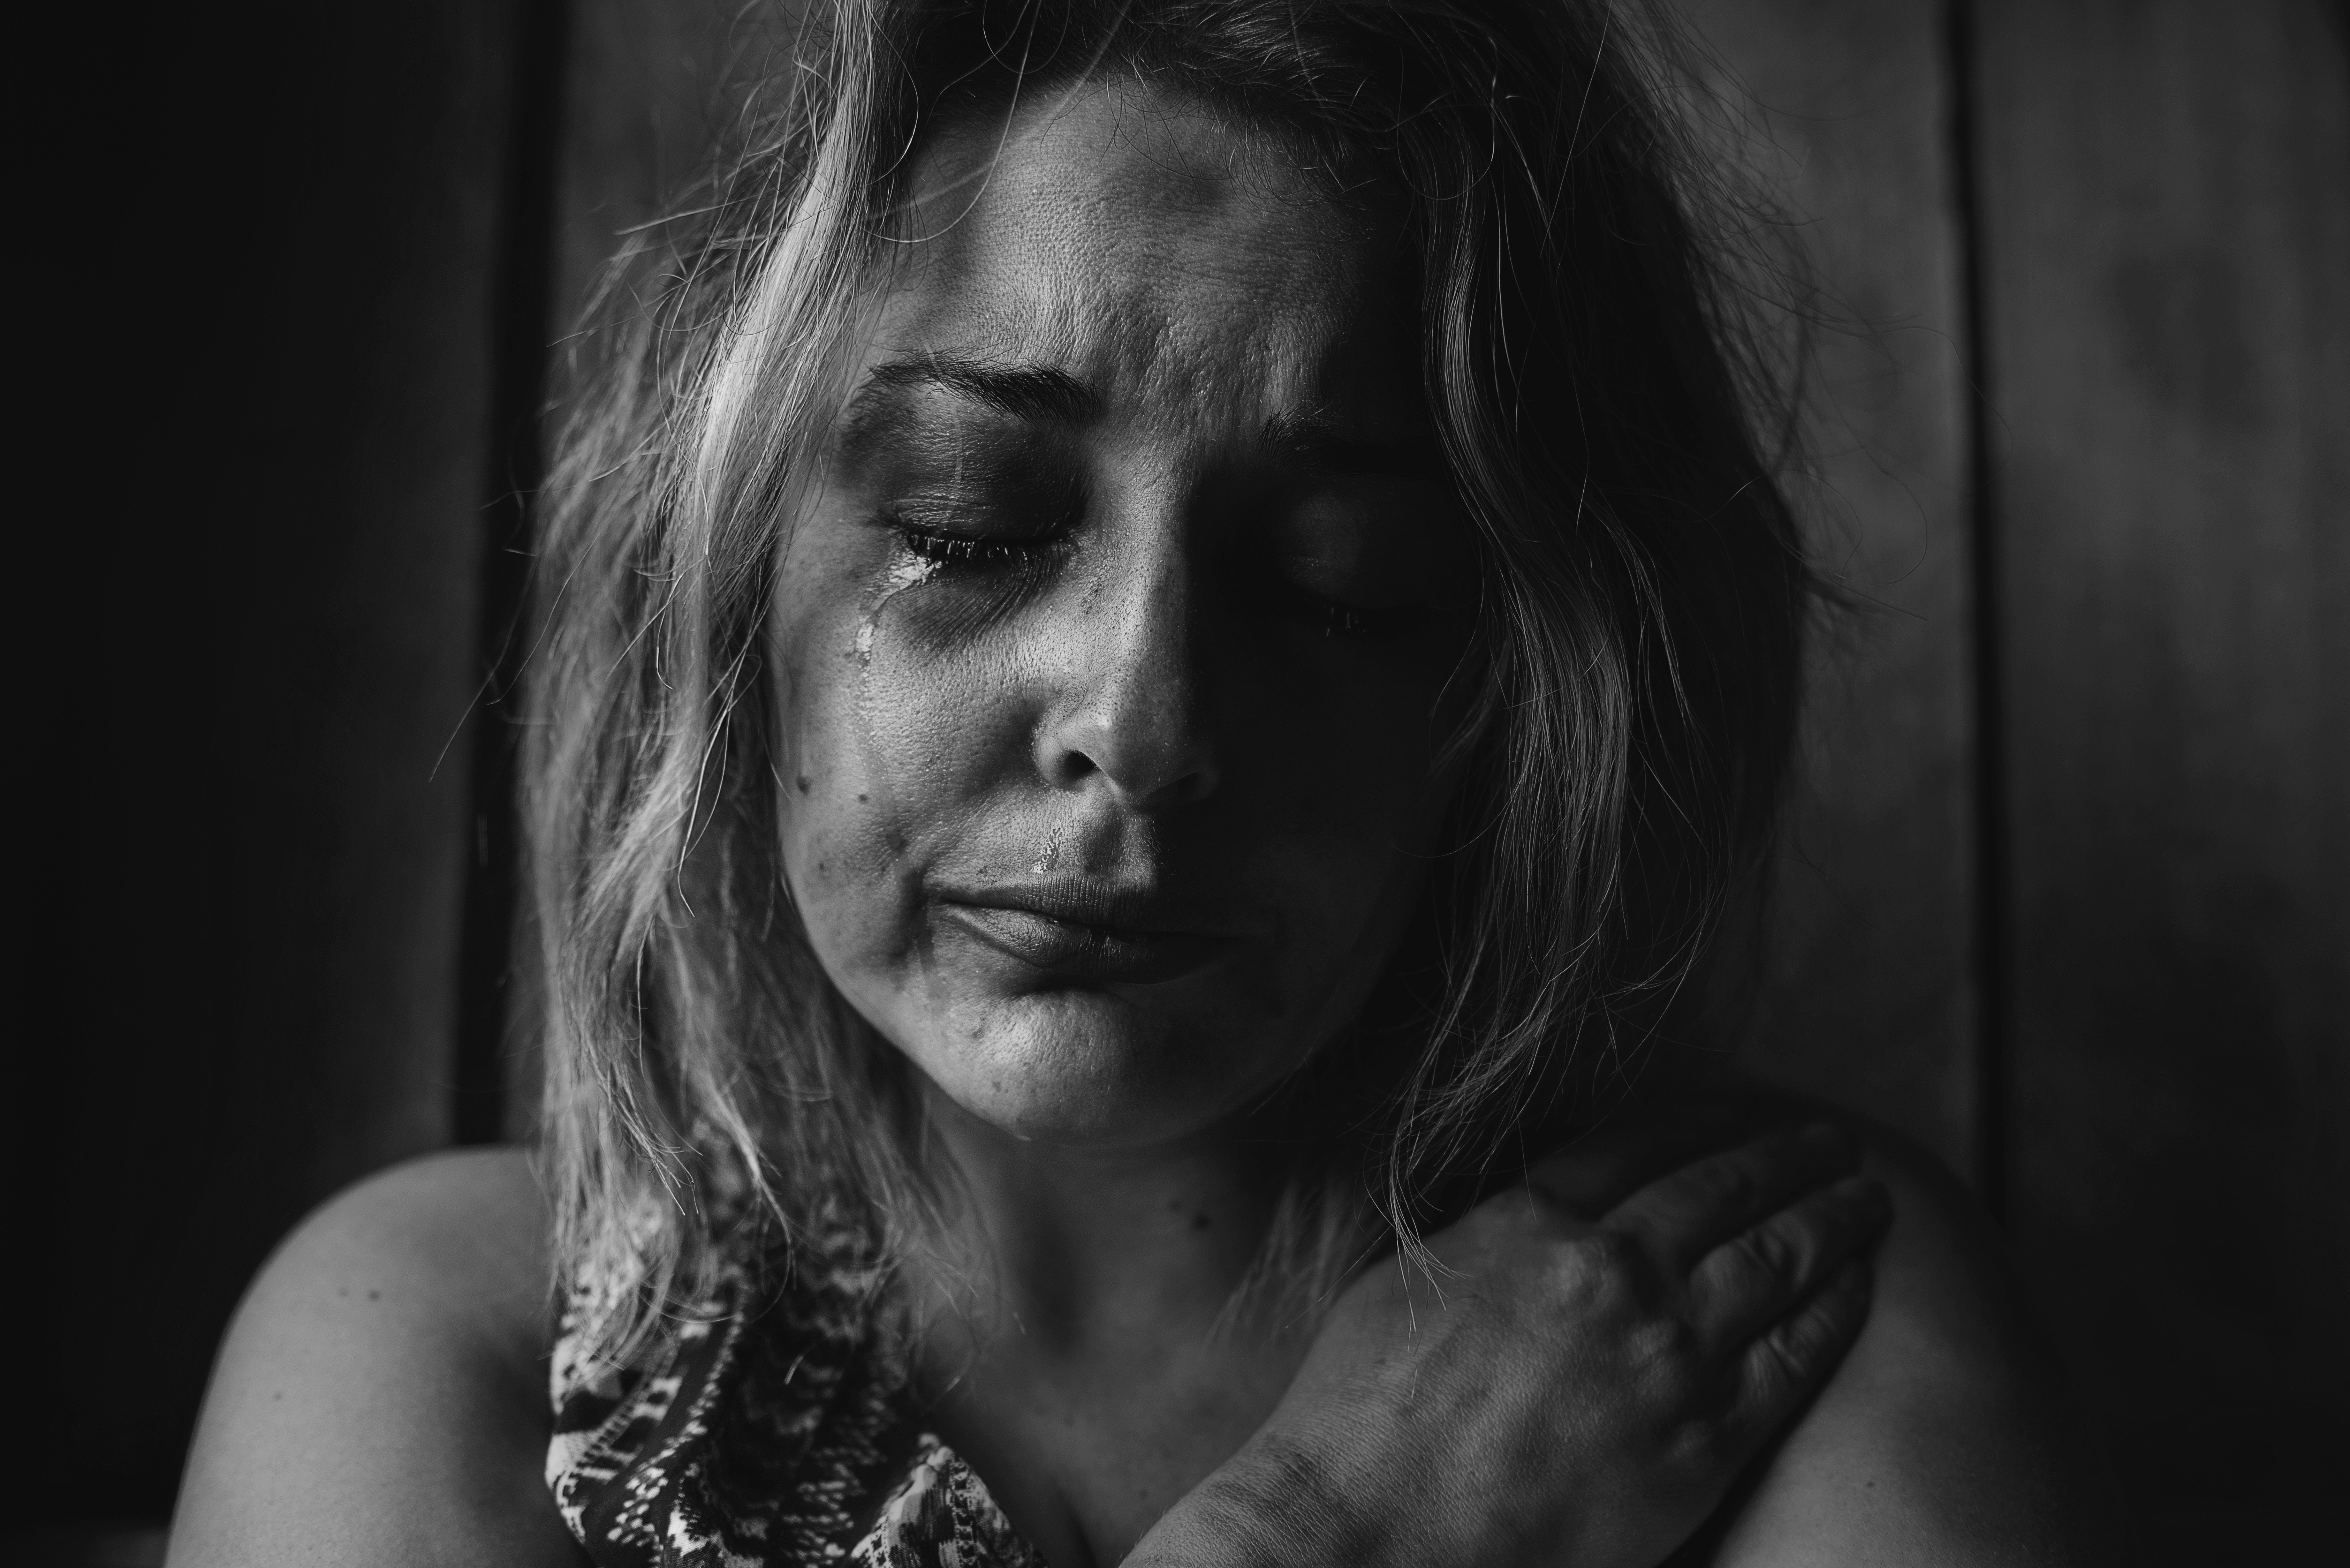 Crying woman in black and white portrait grieving